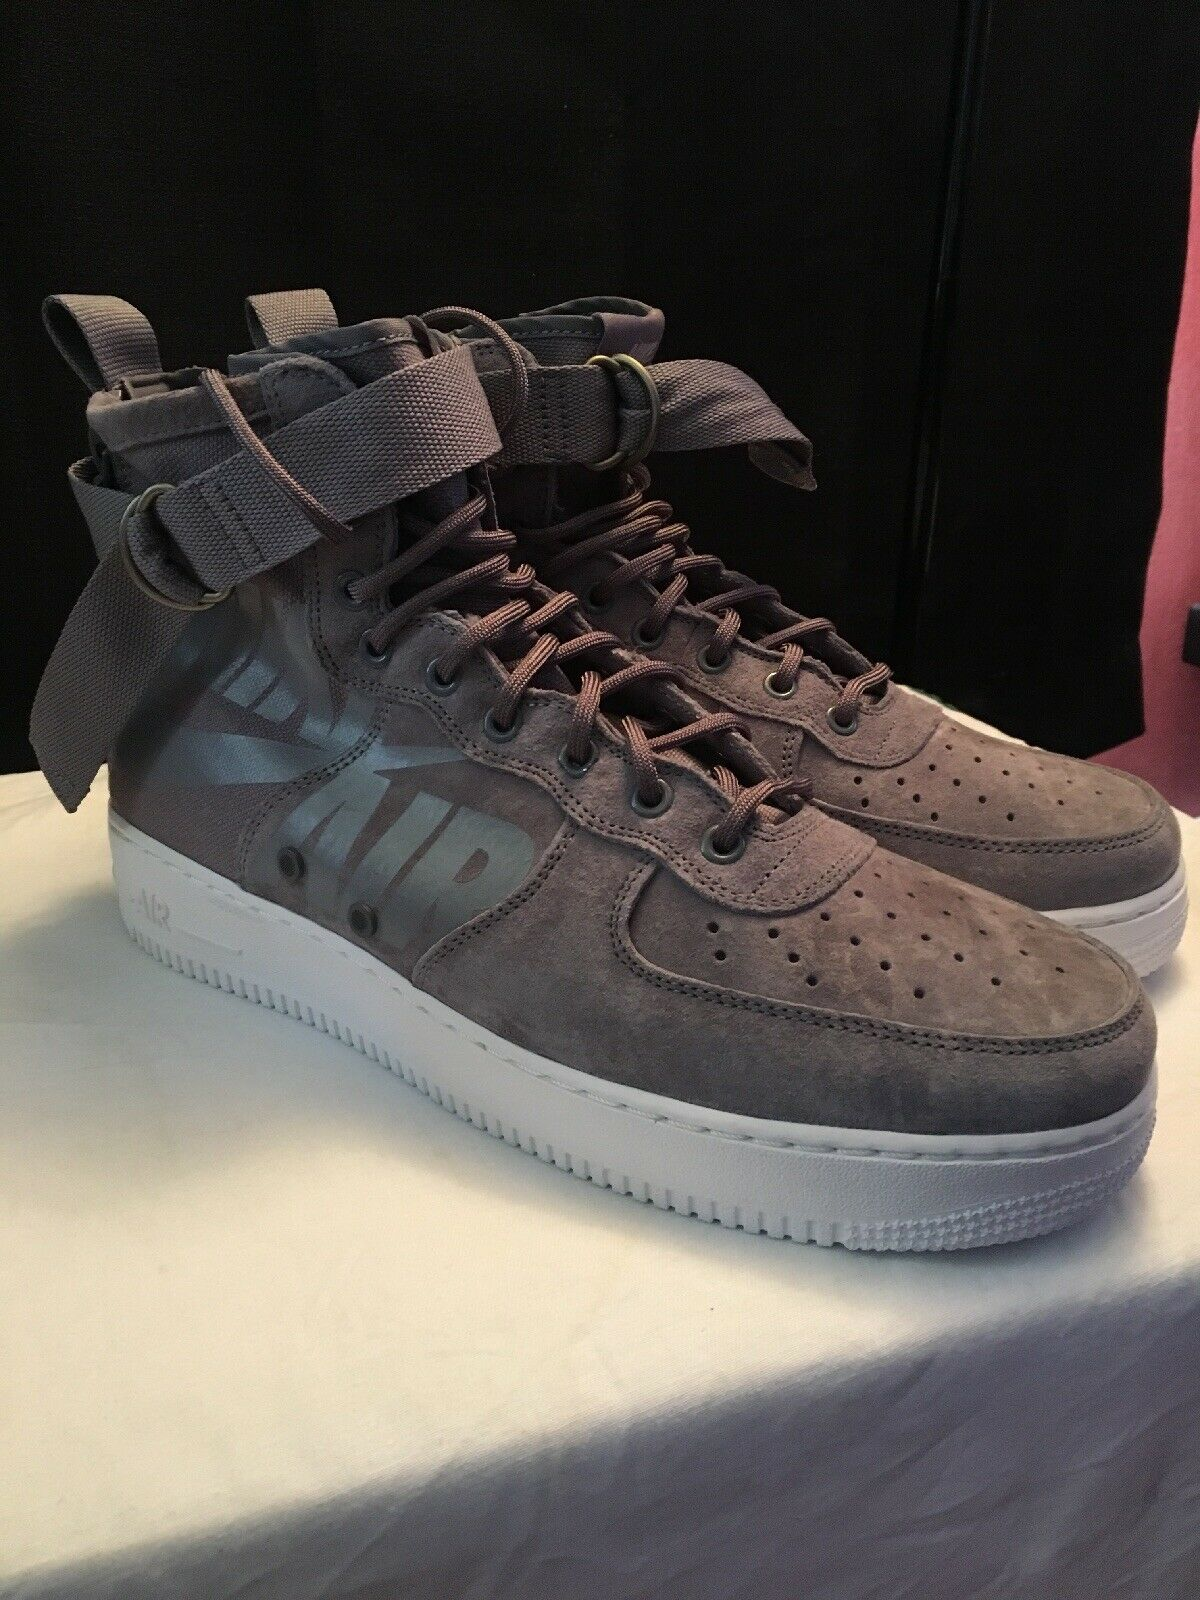 Nike SF-AF1 Mid Men's Casual shoes Gunsmoke Wolf Grey 917753 007 size 11